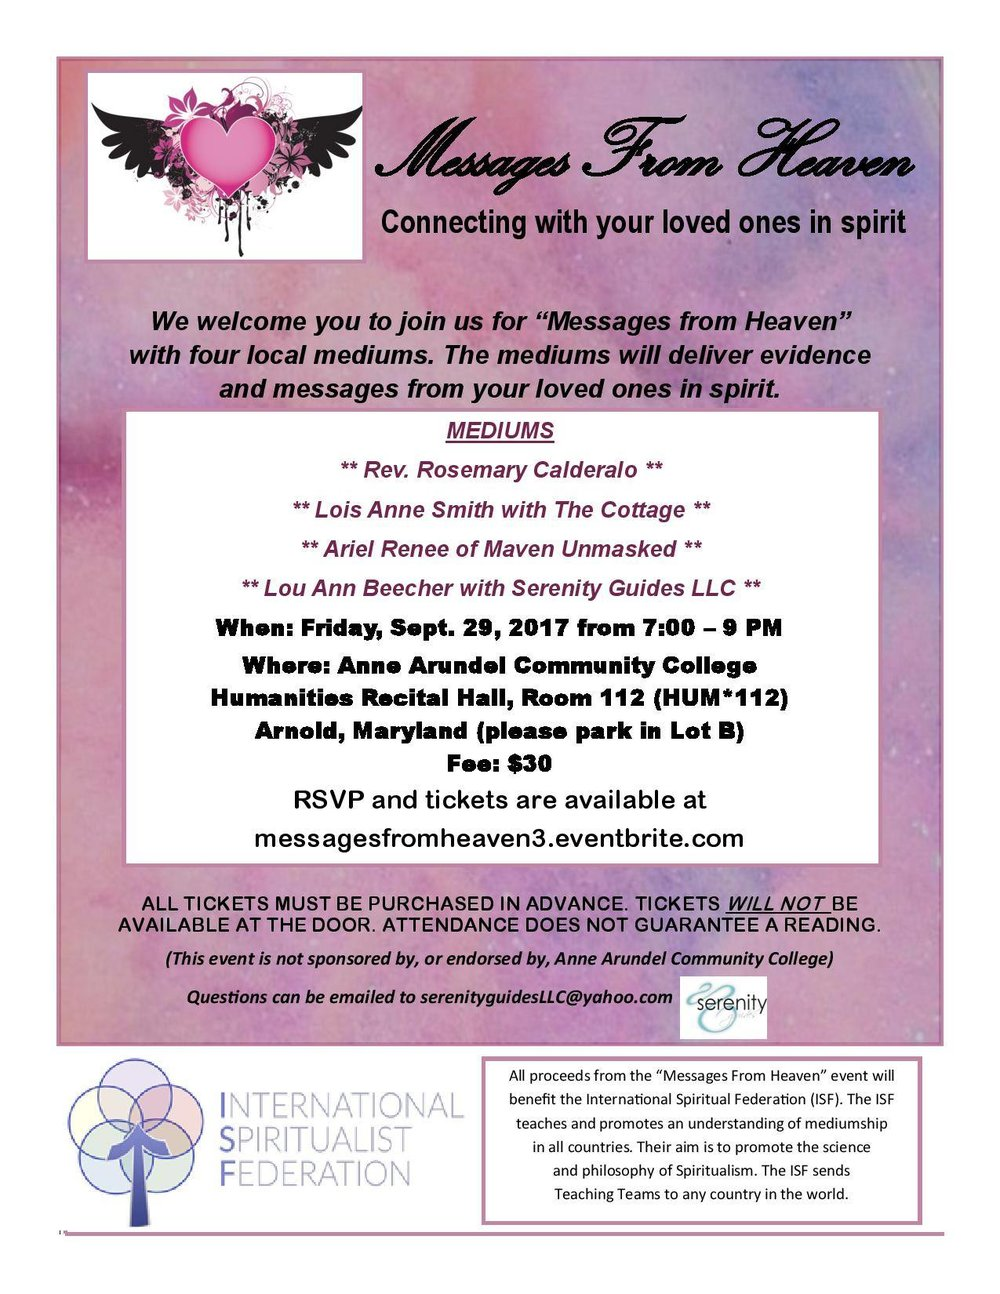 Messages From Heaven - ISF September 2017 Fundraiser Flyer.jpg